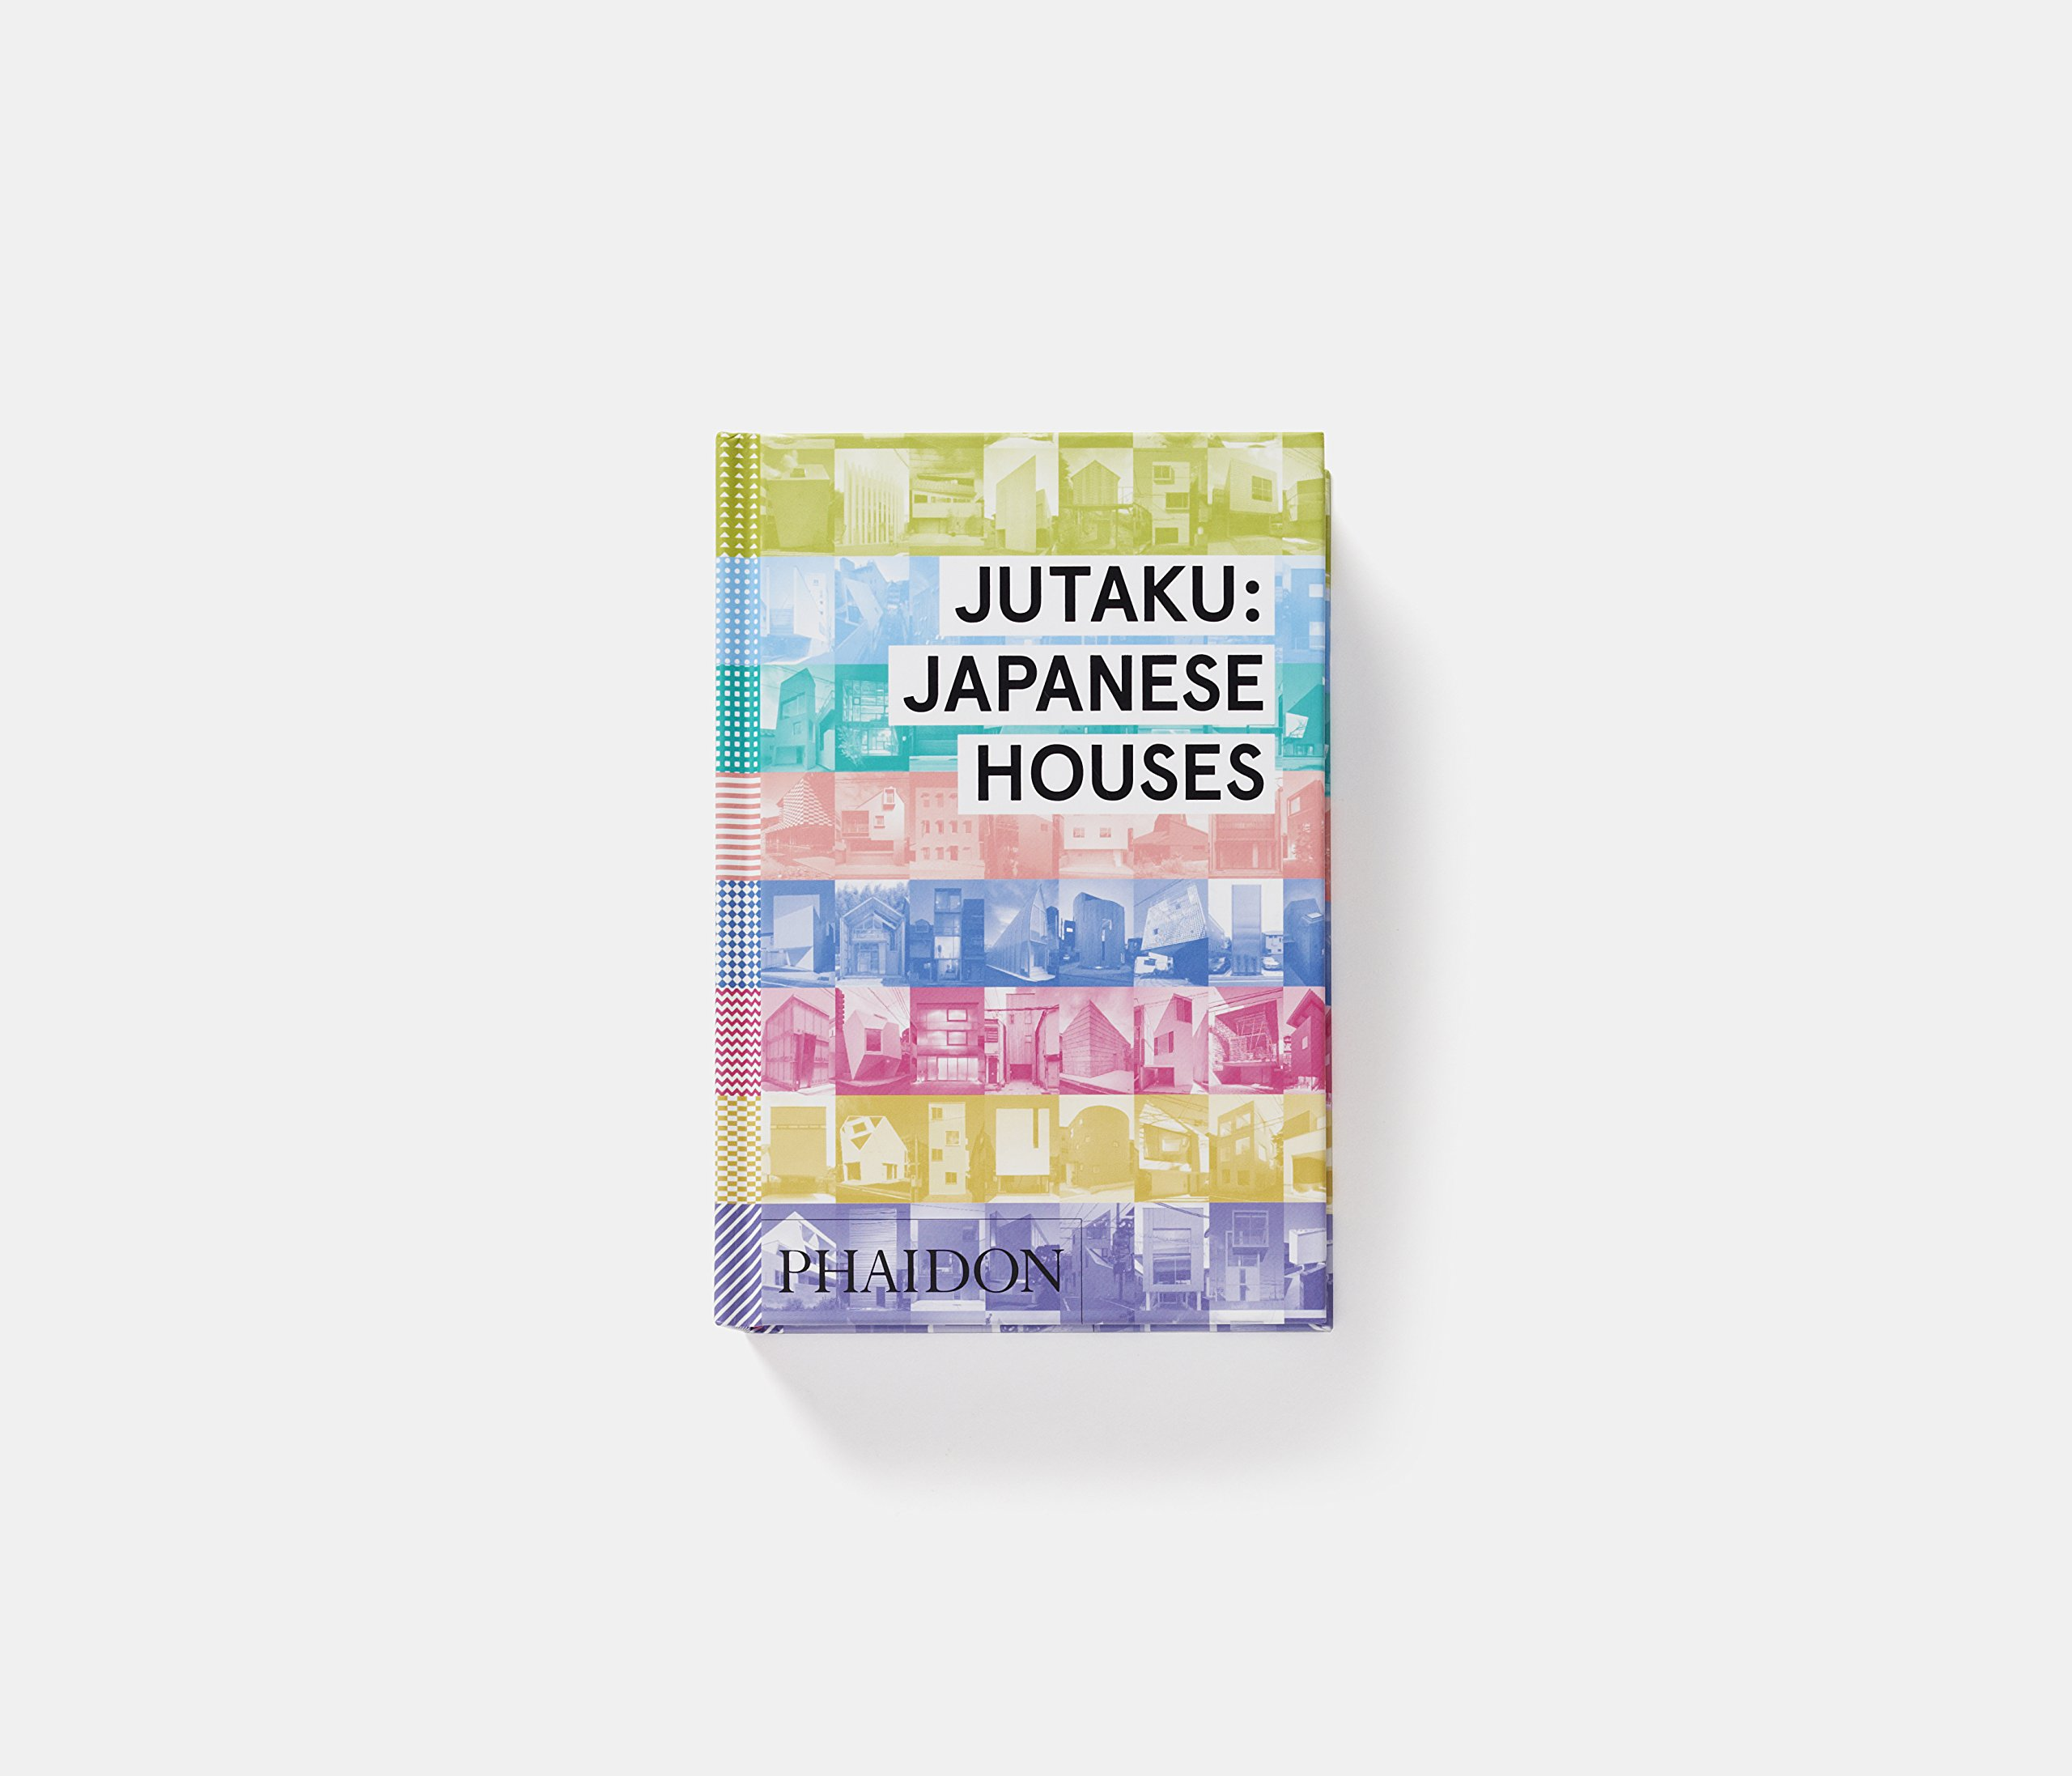 Jutaku japanese houses  (Anglais ) Relié – 15 octobre 2015 Naomi Pollock  Phaidon Press Ltd 0714869627 Architektur Décoration de Noël abbd4cbcef2